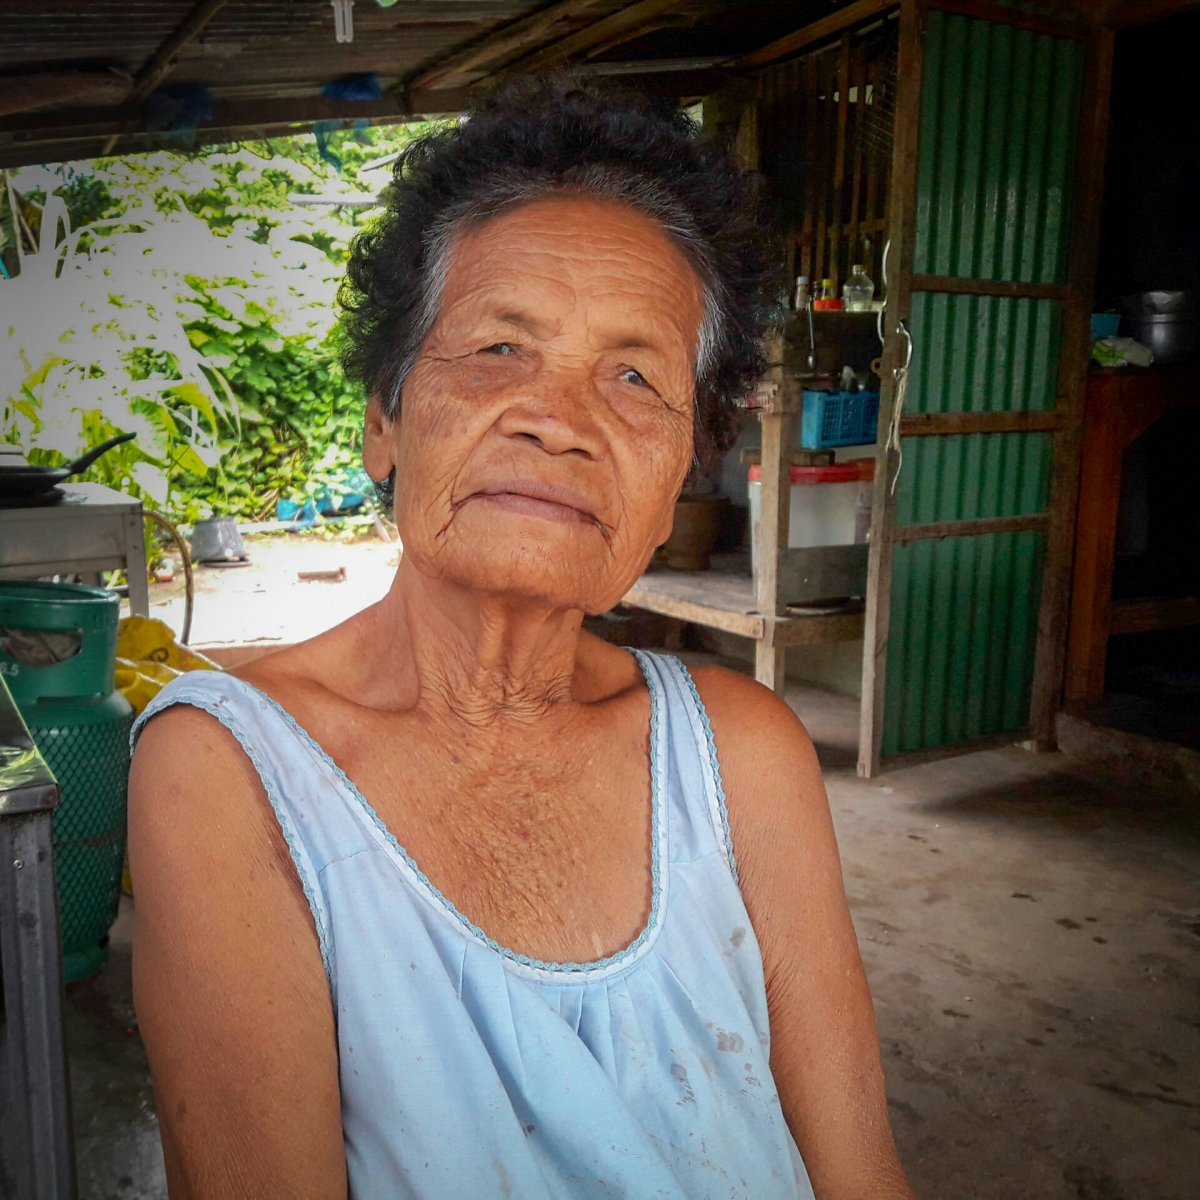 Kind grandmother Thai village photo of day